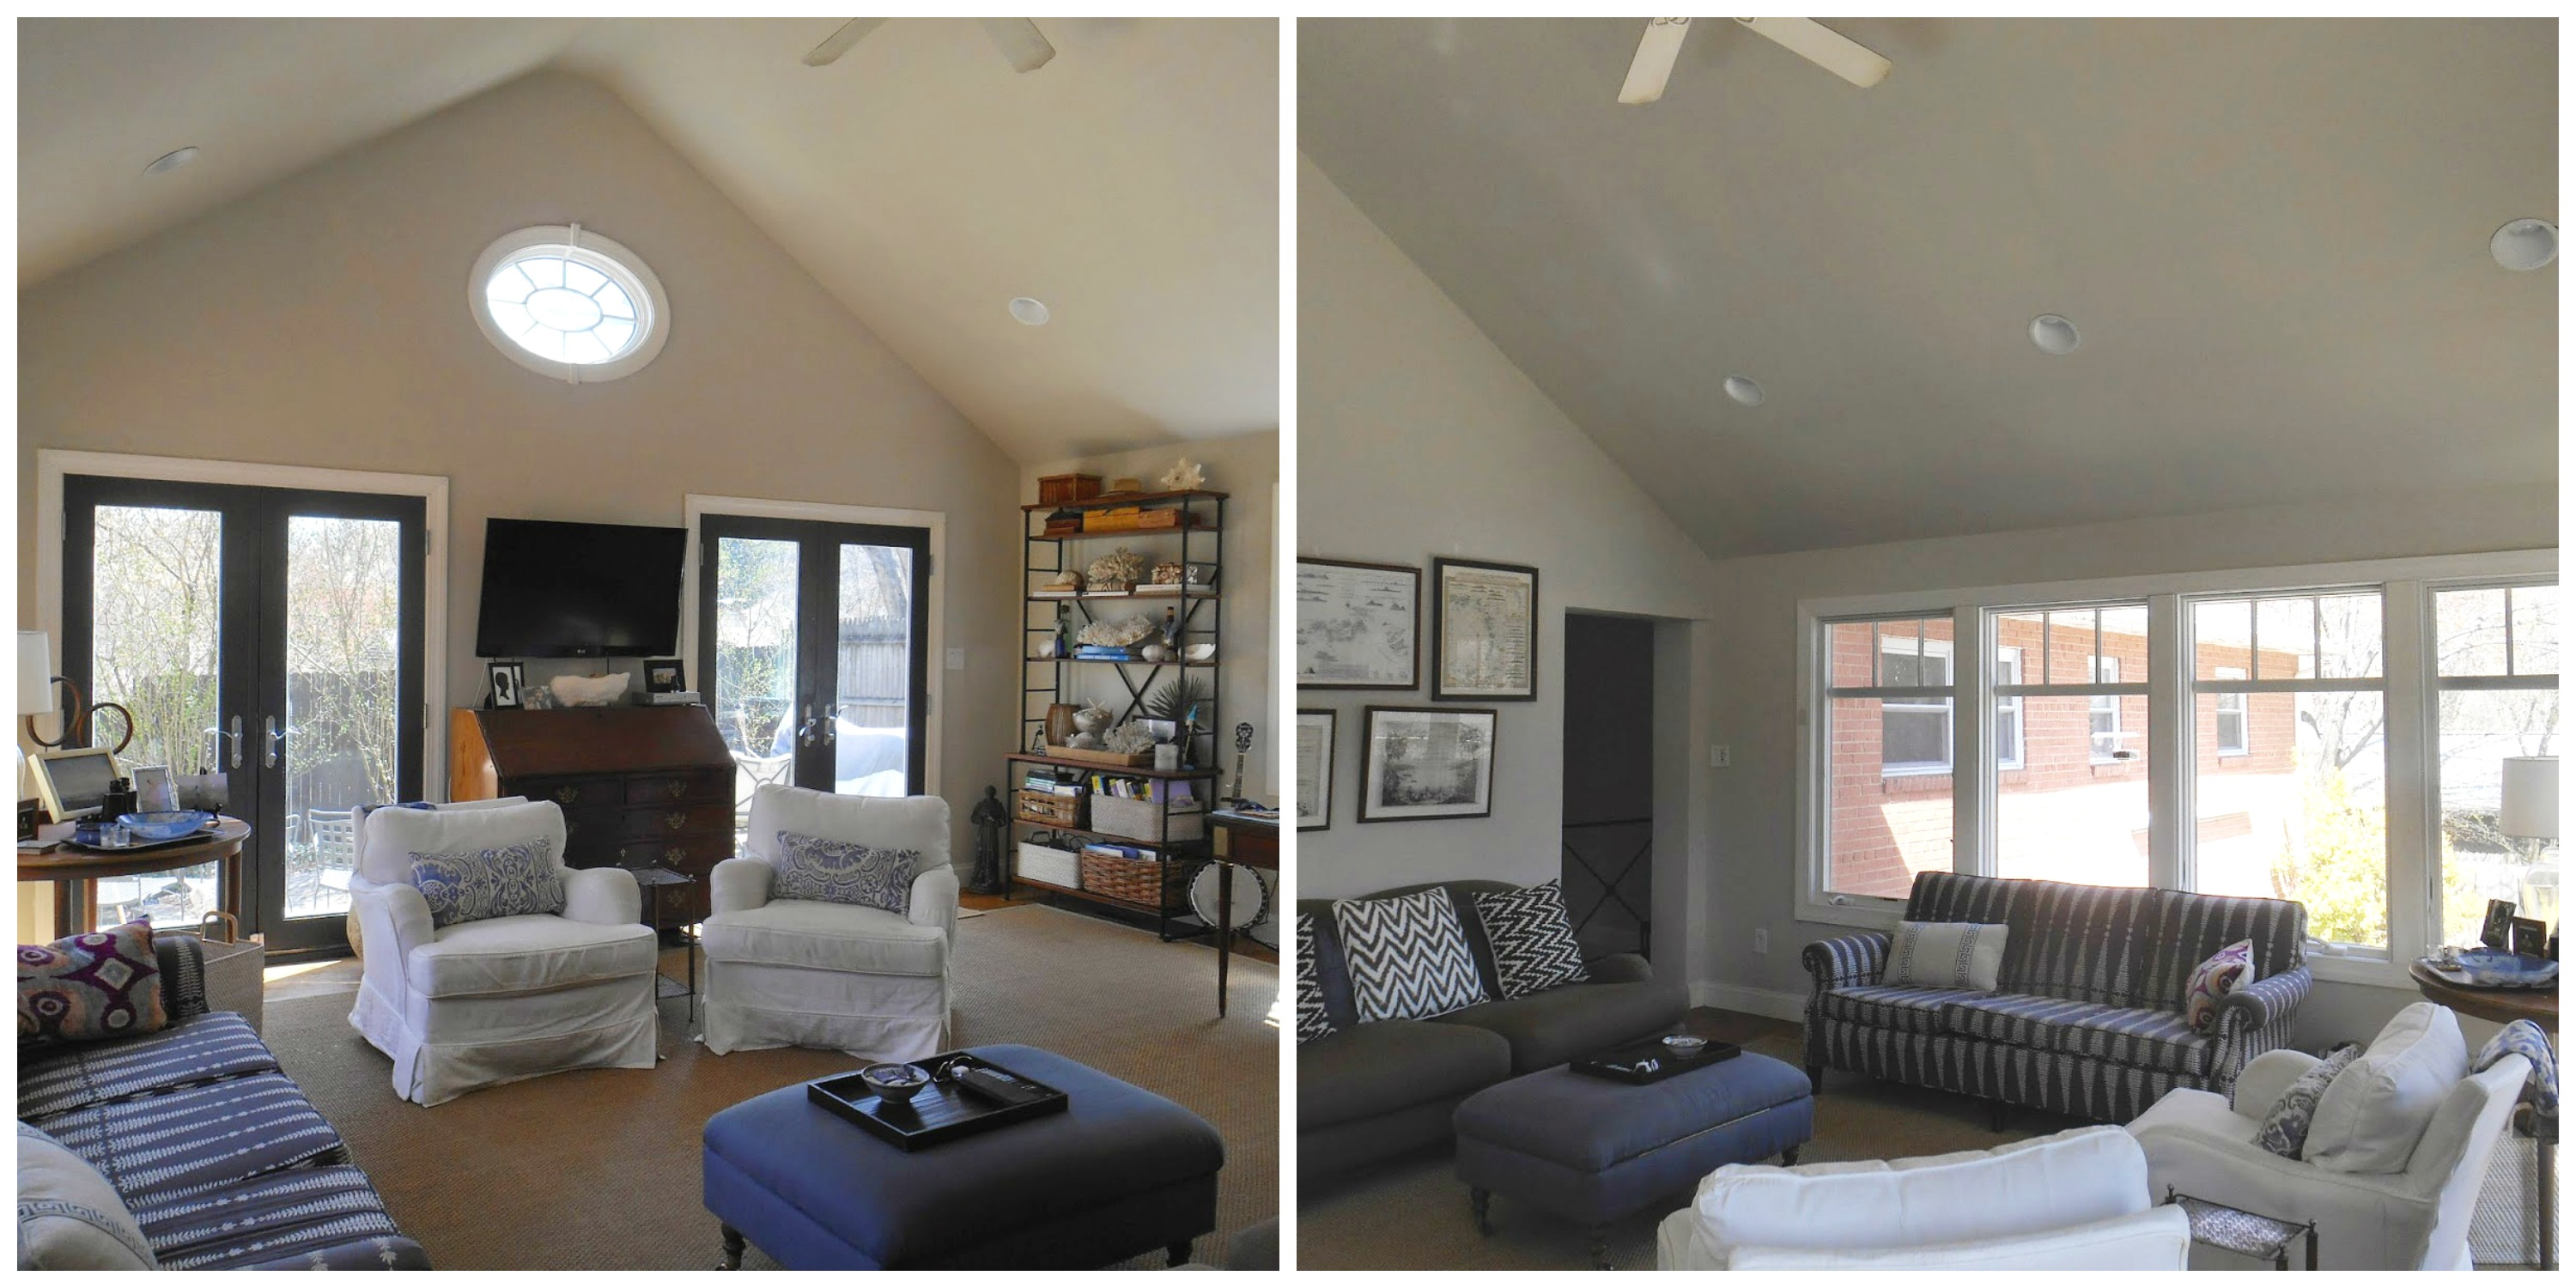 My notting hill blog - Family Room Home Painting